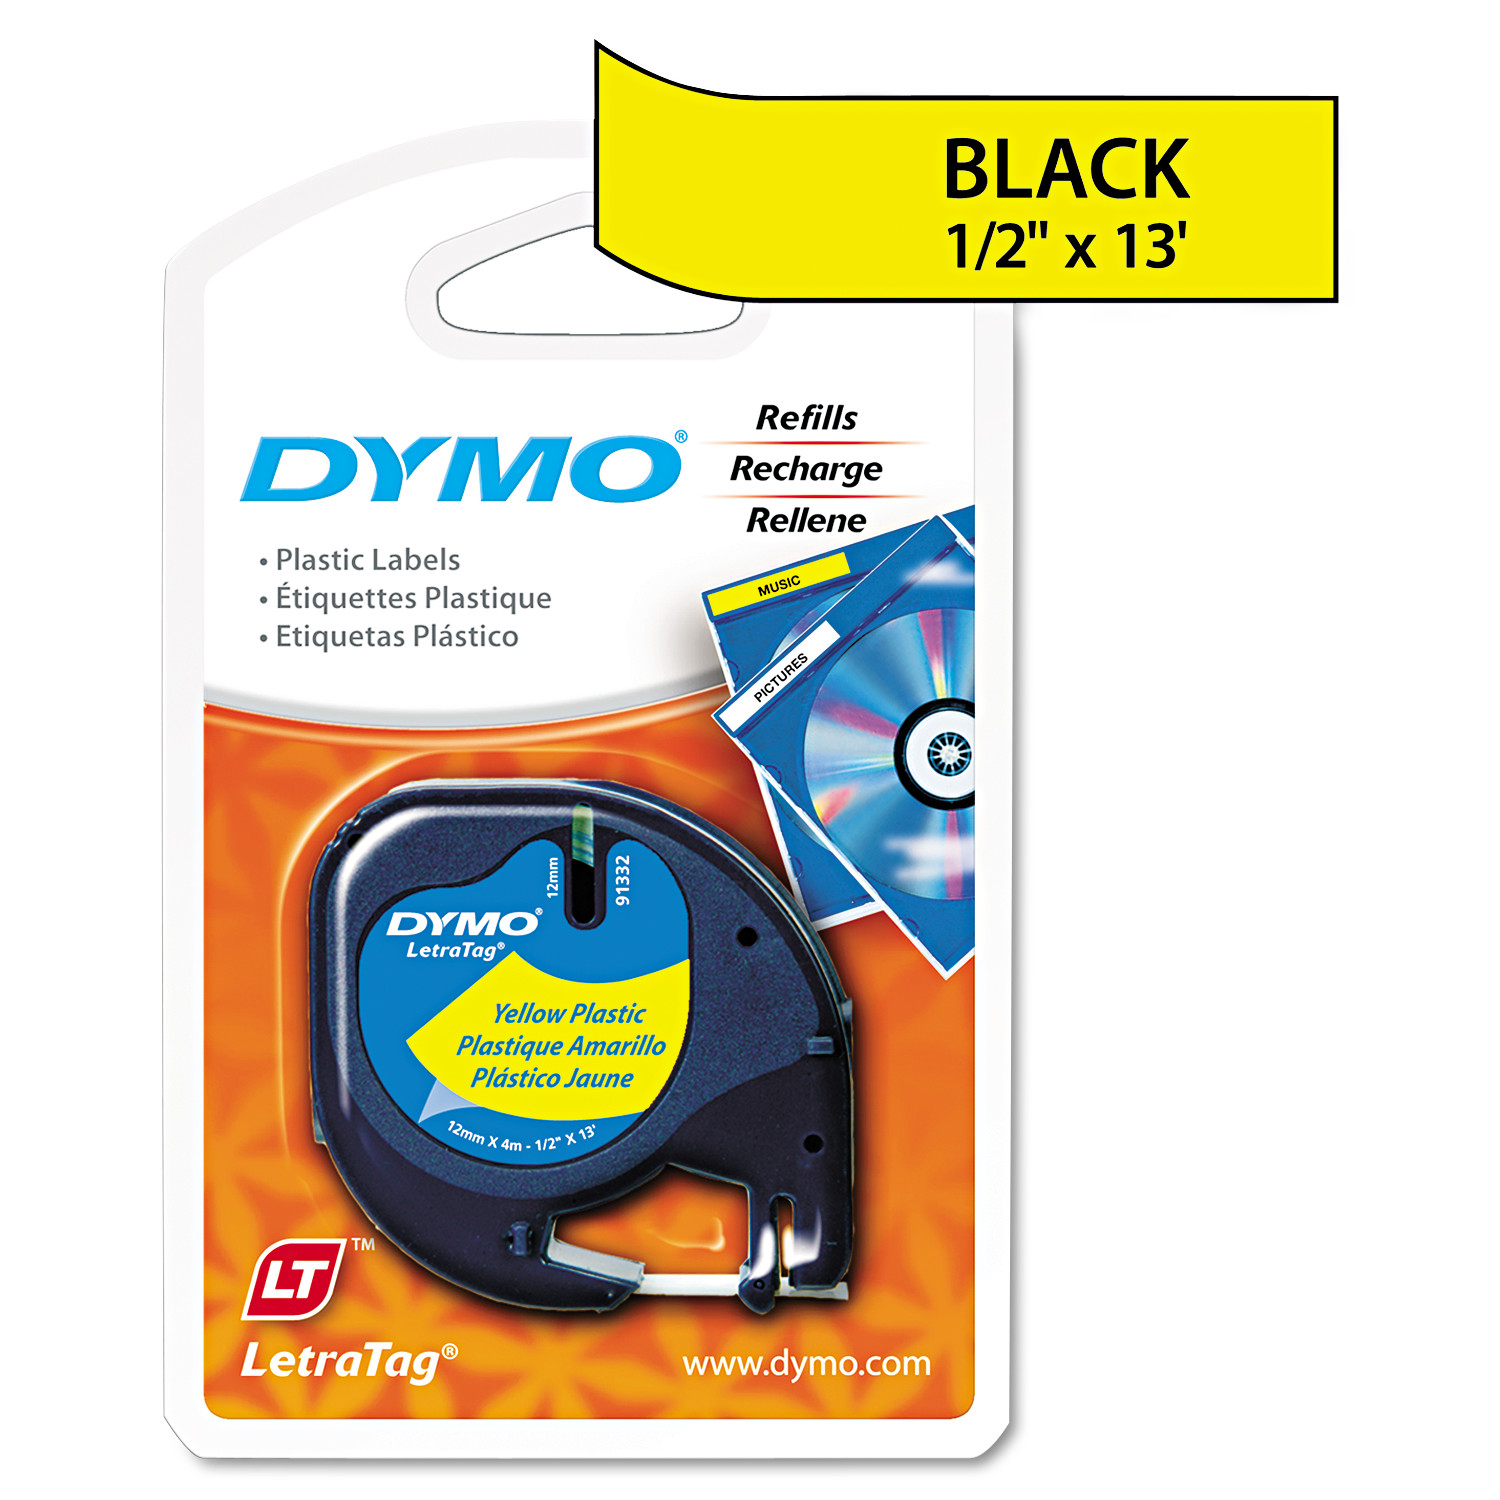 DYMO LetraTag Plastic Label Tape Cassette, 1/2in x 13ft, Hyper Yellow